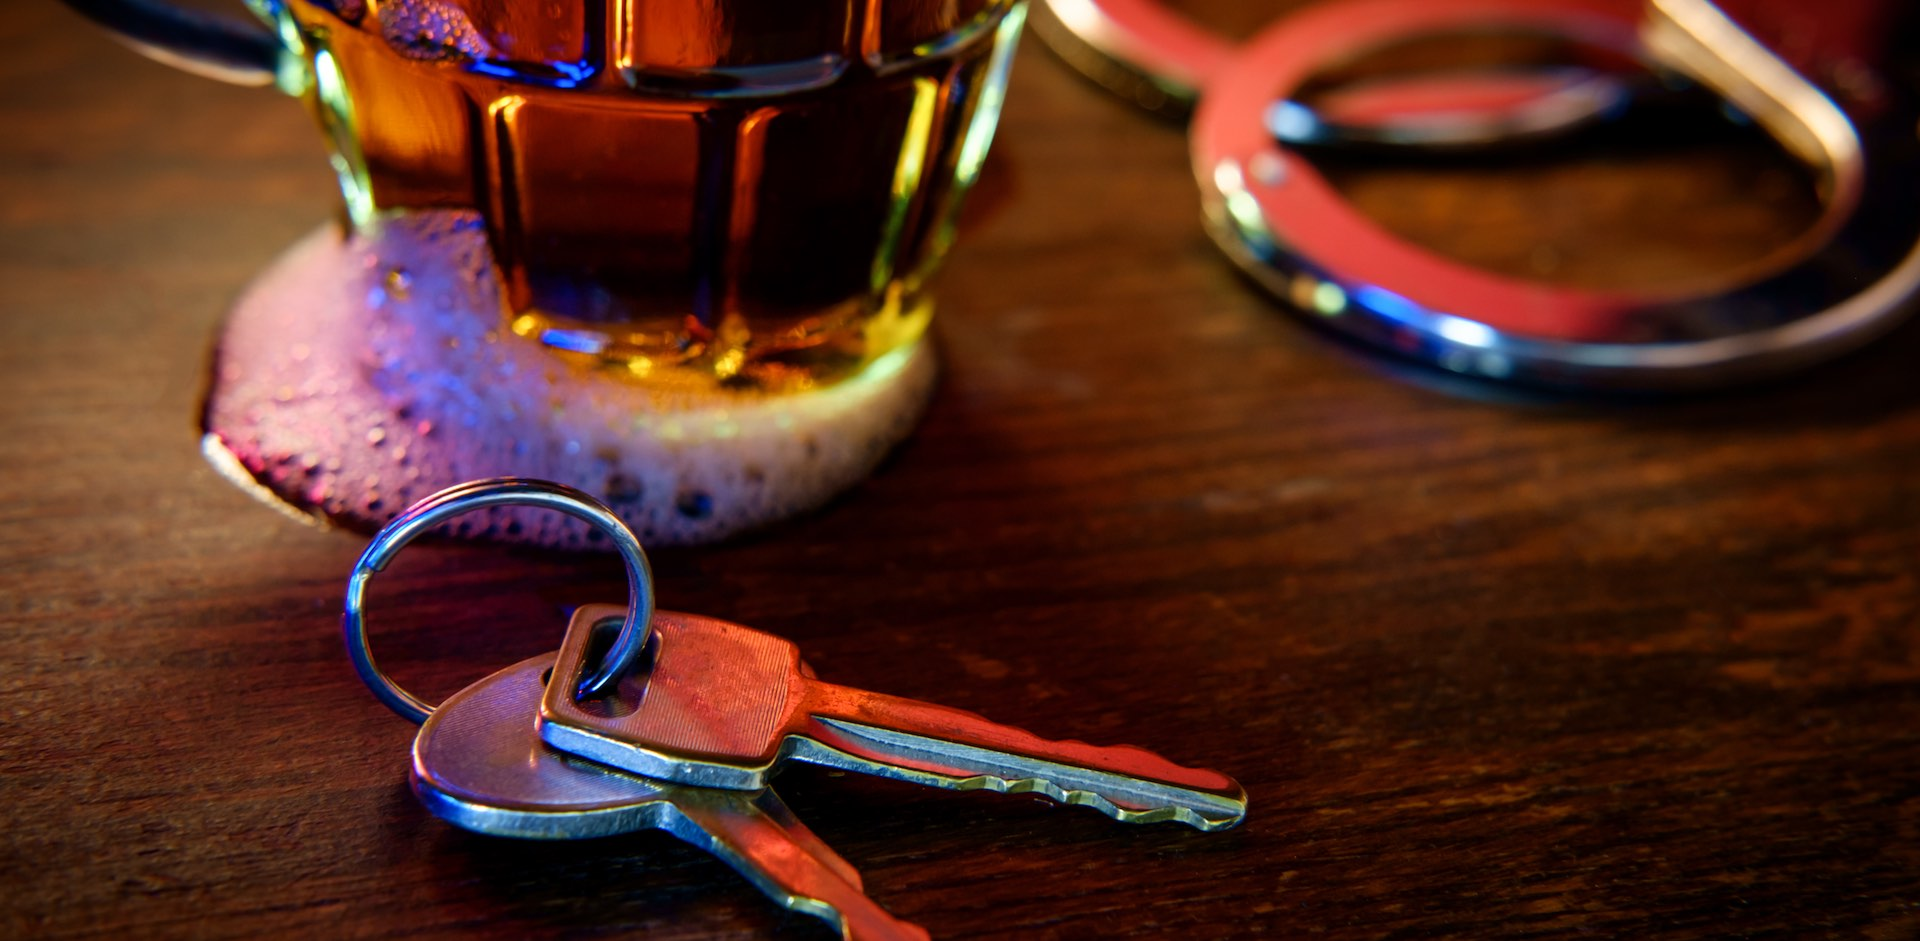 Driving while under the influence after Third DWI Offense resulted in keys on table with booze and handcuffs.